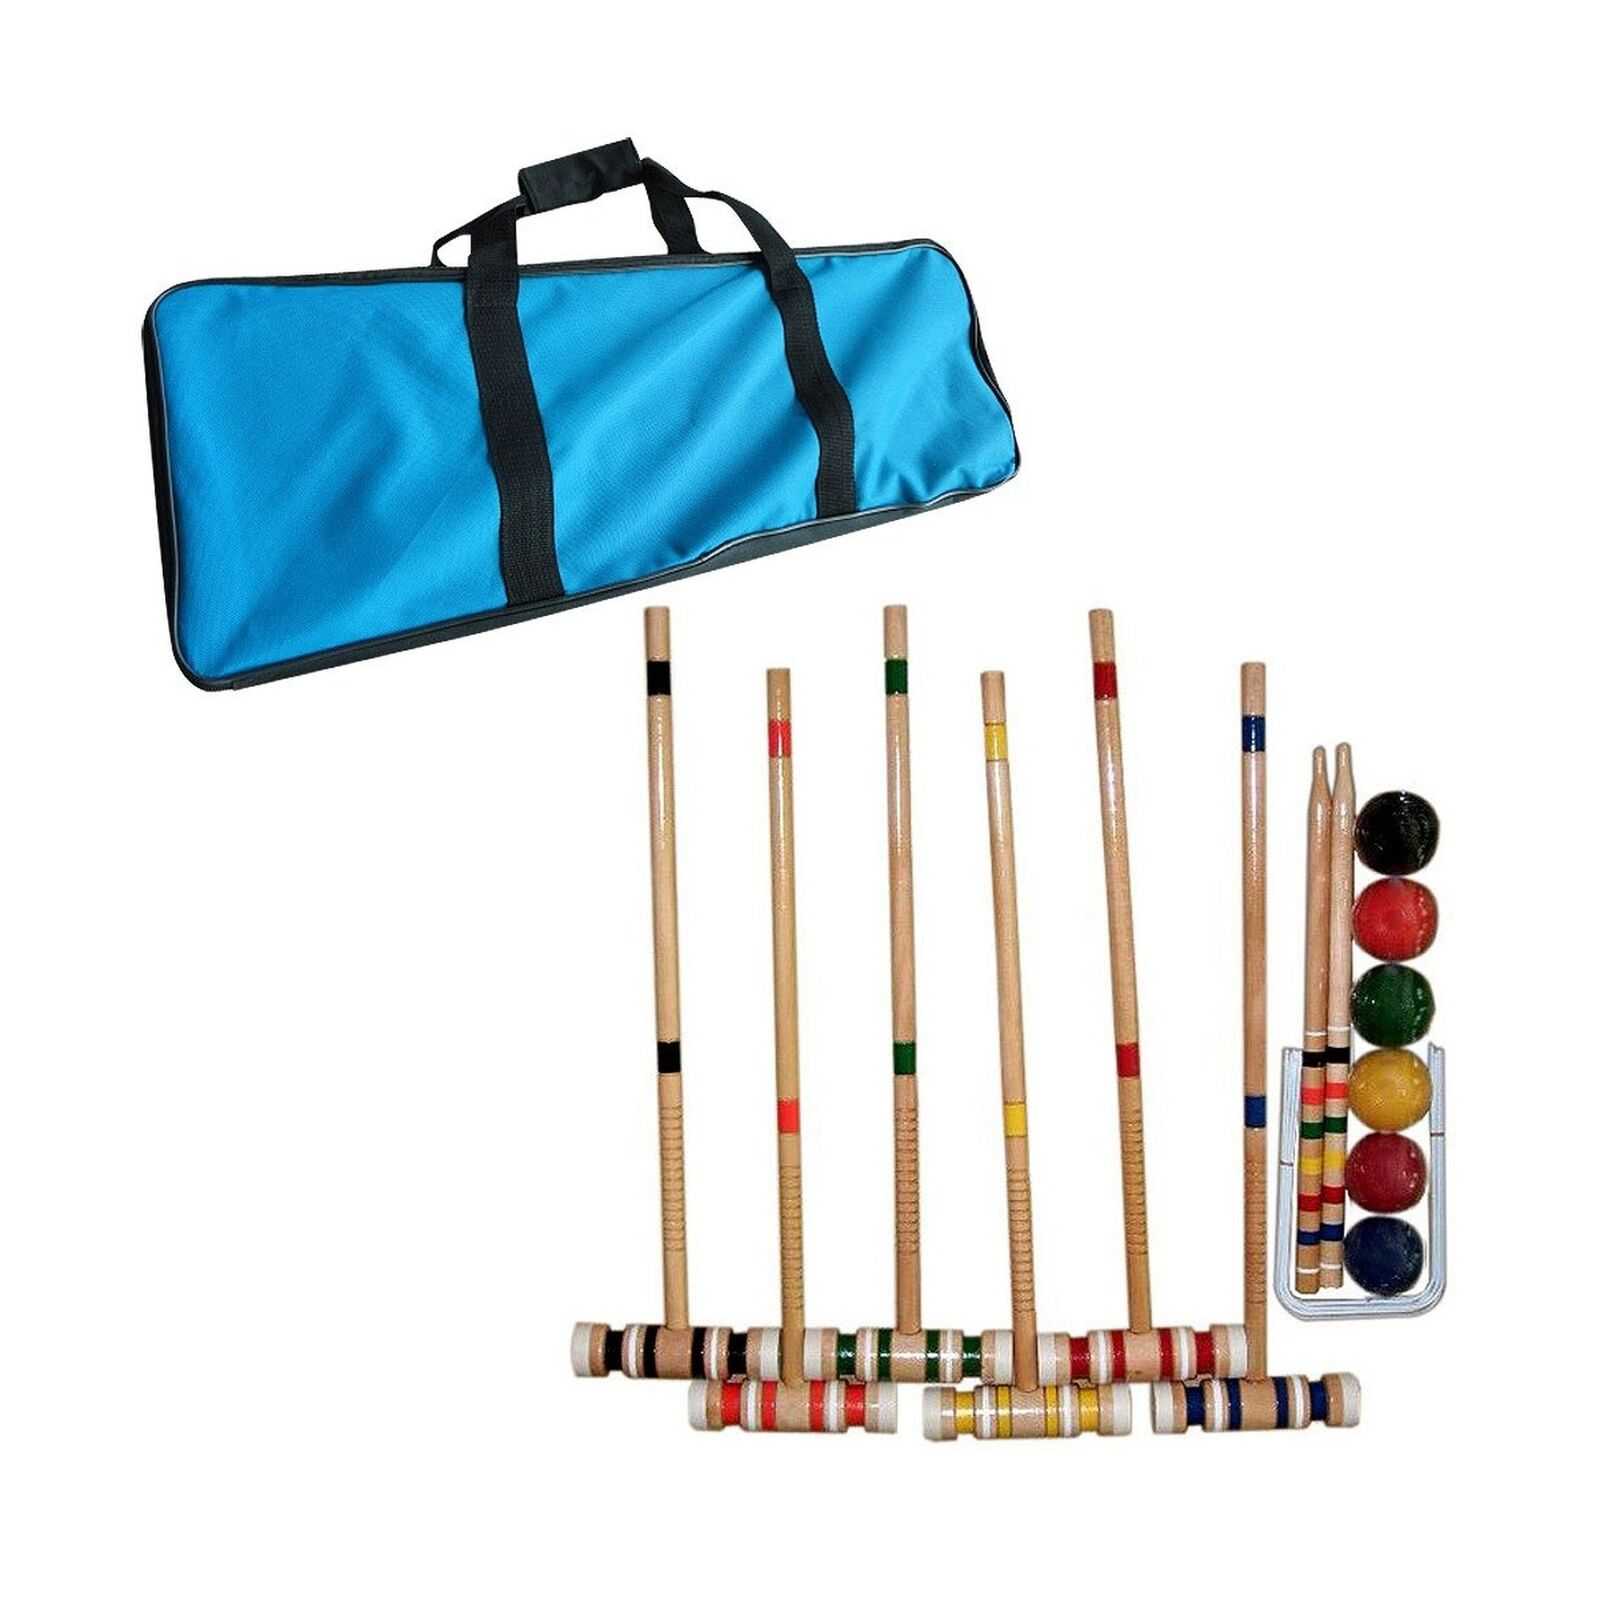 Global Croquet Set with Carrying Case